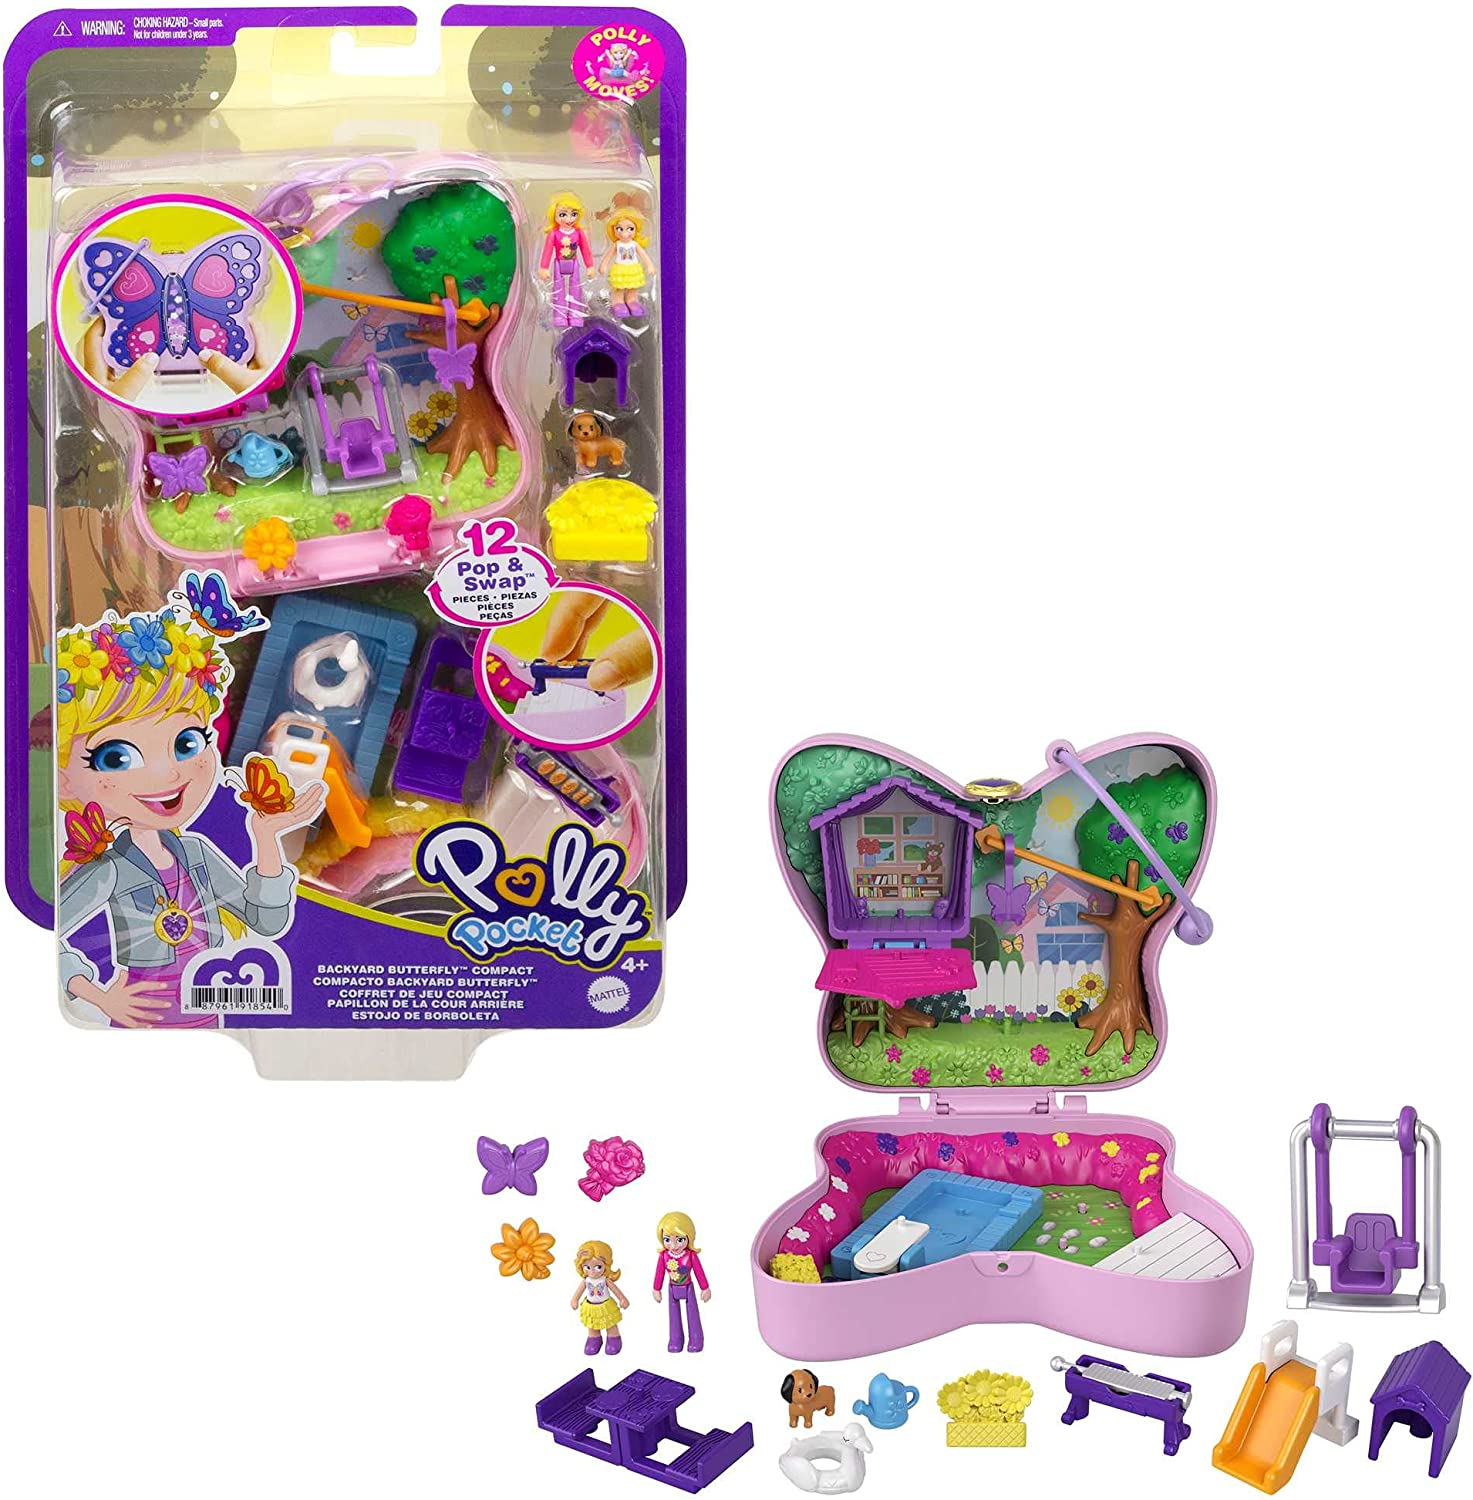 Polly Pocket Backyard Max 69% Max 49% OFF OFF Butterfly Compact Outdoor with Micr Theme